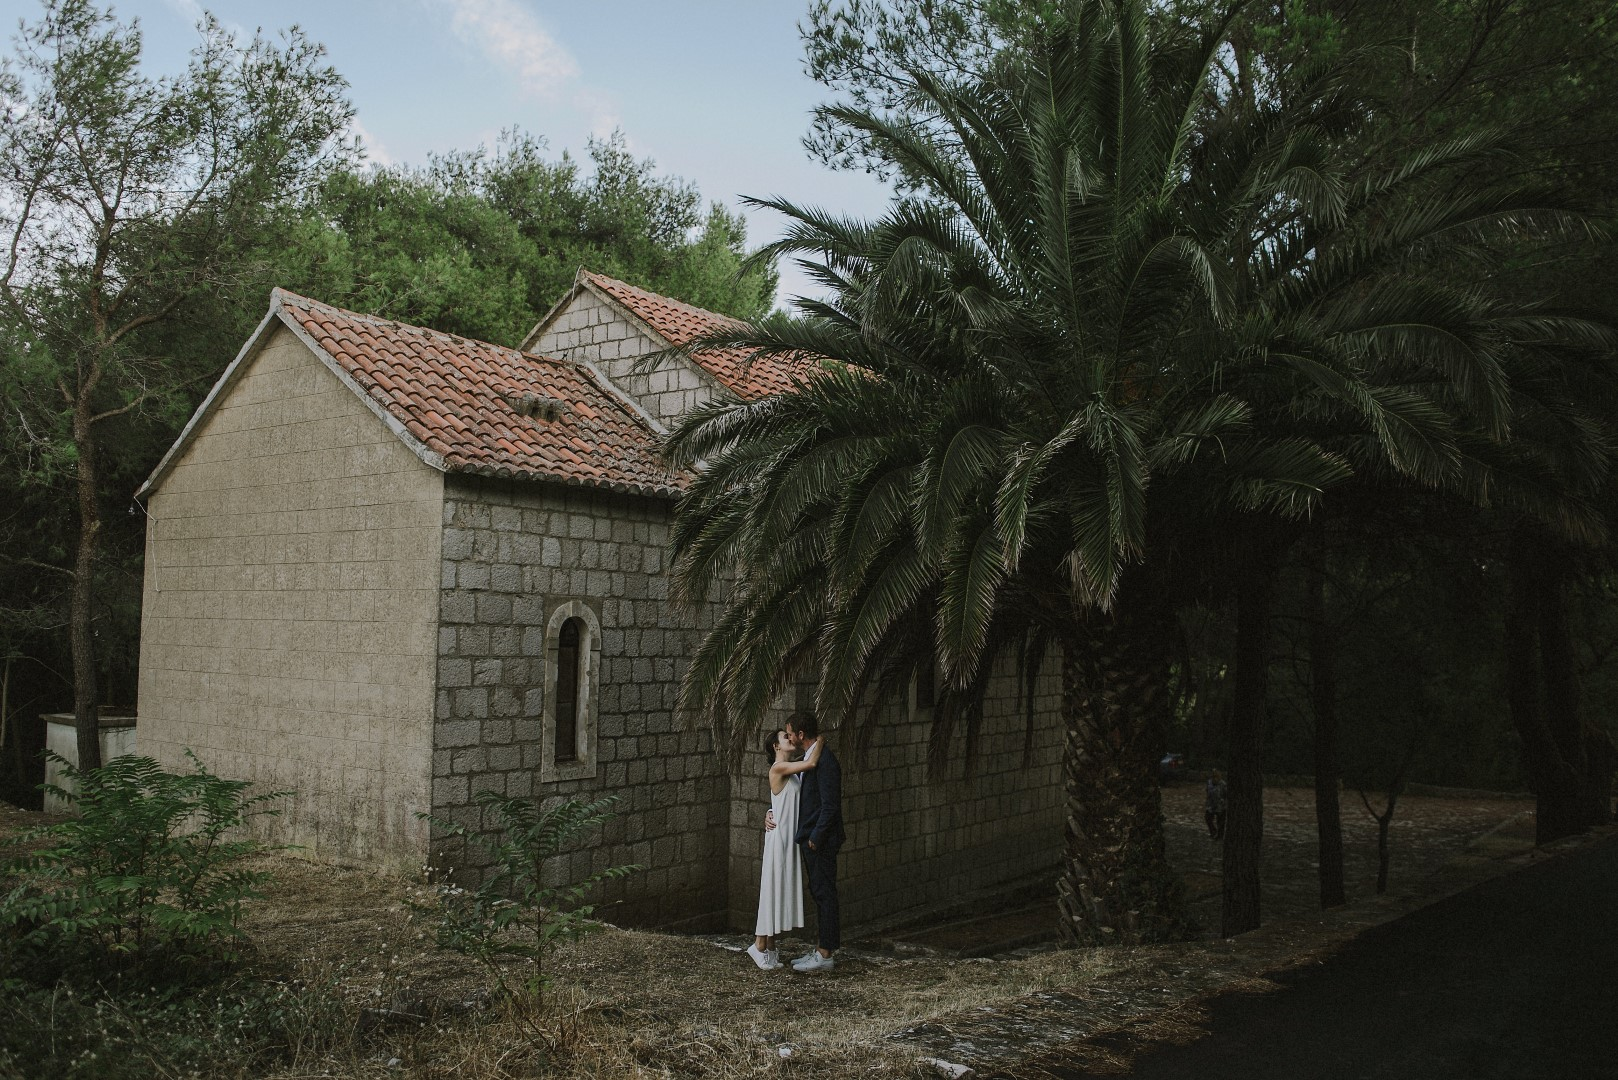 A photo of the happy couple from their photosession with Marko Marinkovic. Behind them is a church with stone walls as well as some palm trees. They are embracing each other and kissing.